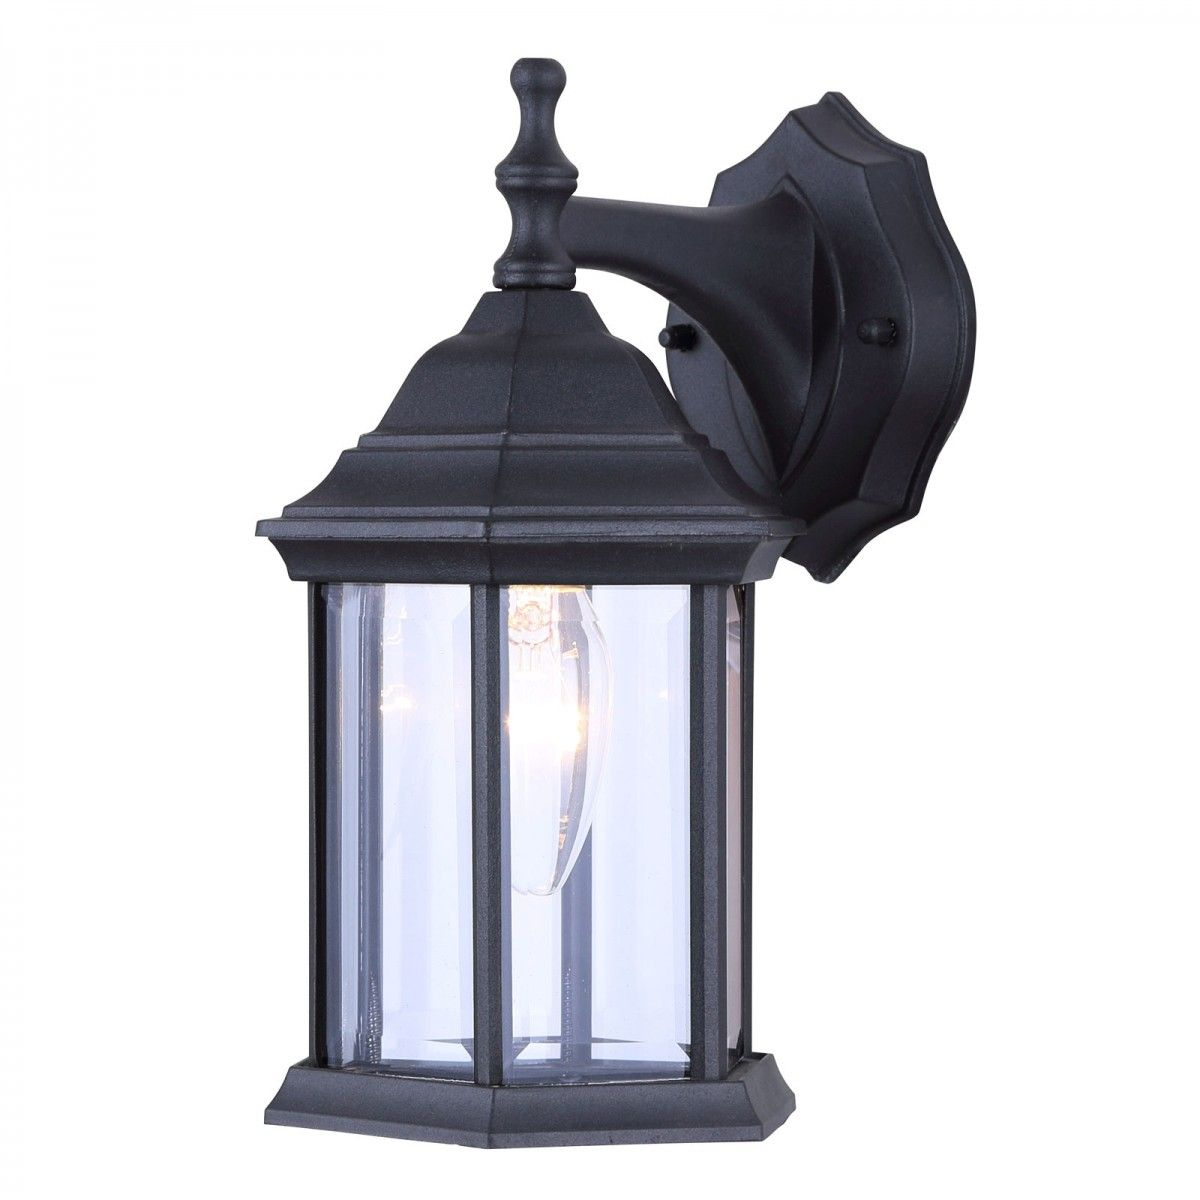 Canarm Iol4bk Exterior Wall Lantern Light Fixture Outdoor Sconce Matte Black With Images Lantern Light Fixture Exterior Wall Light Lantern Lights